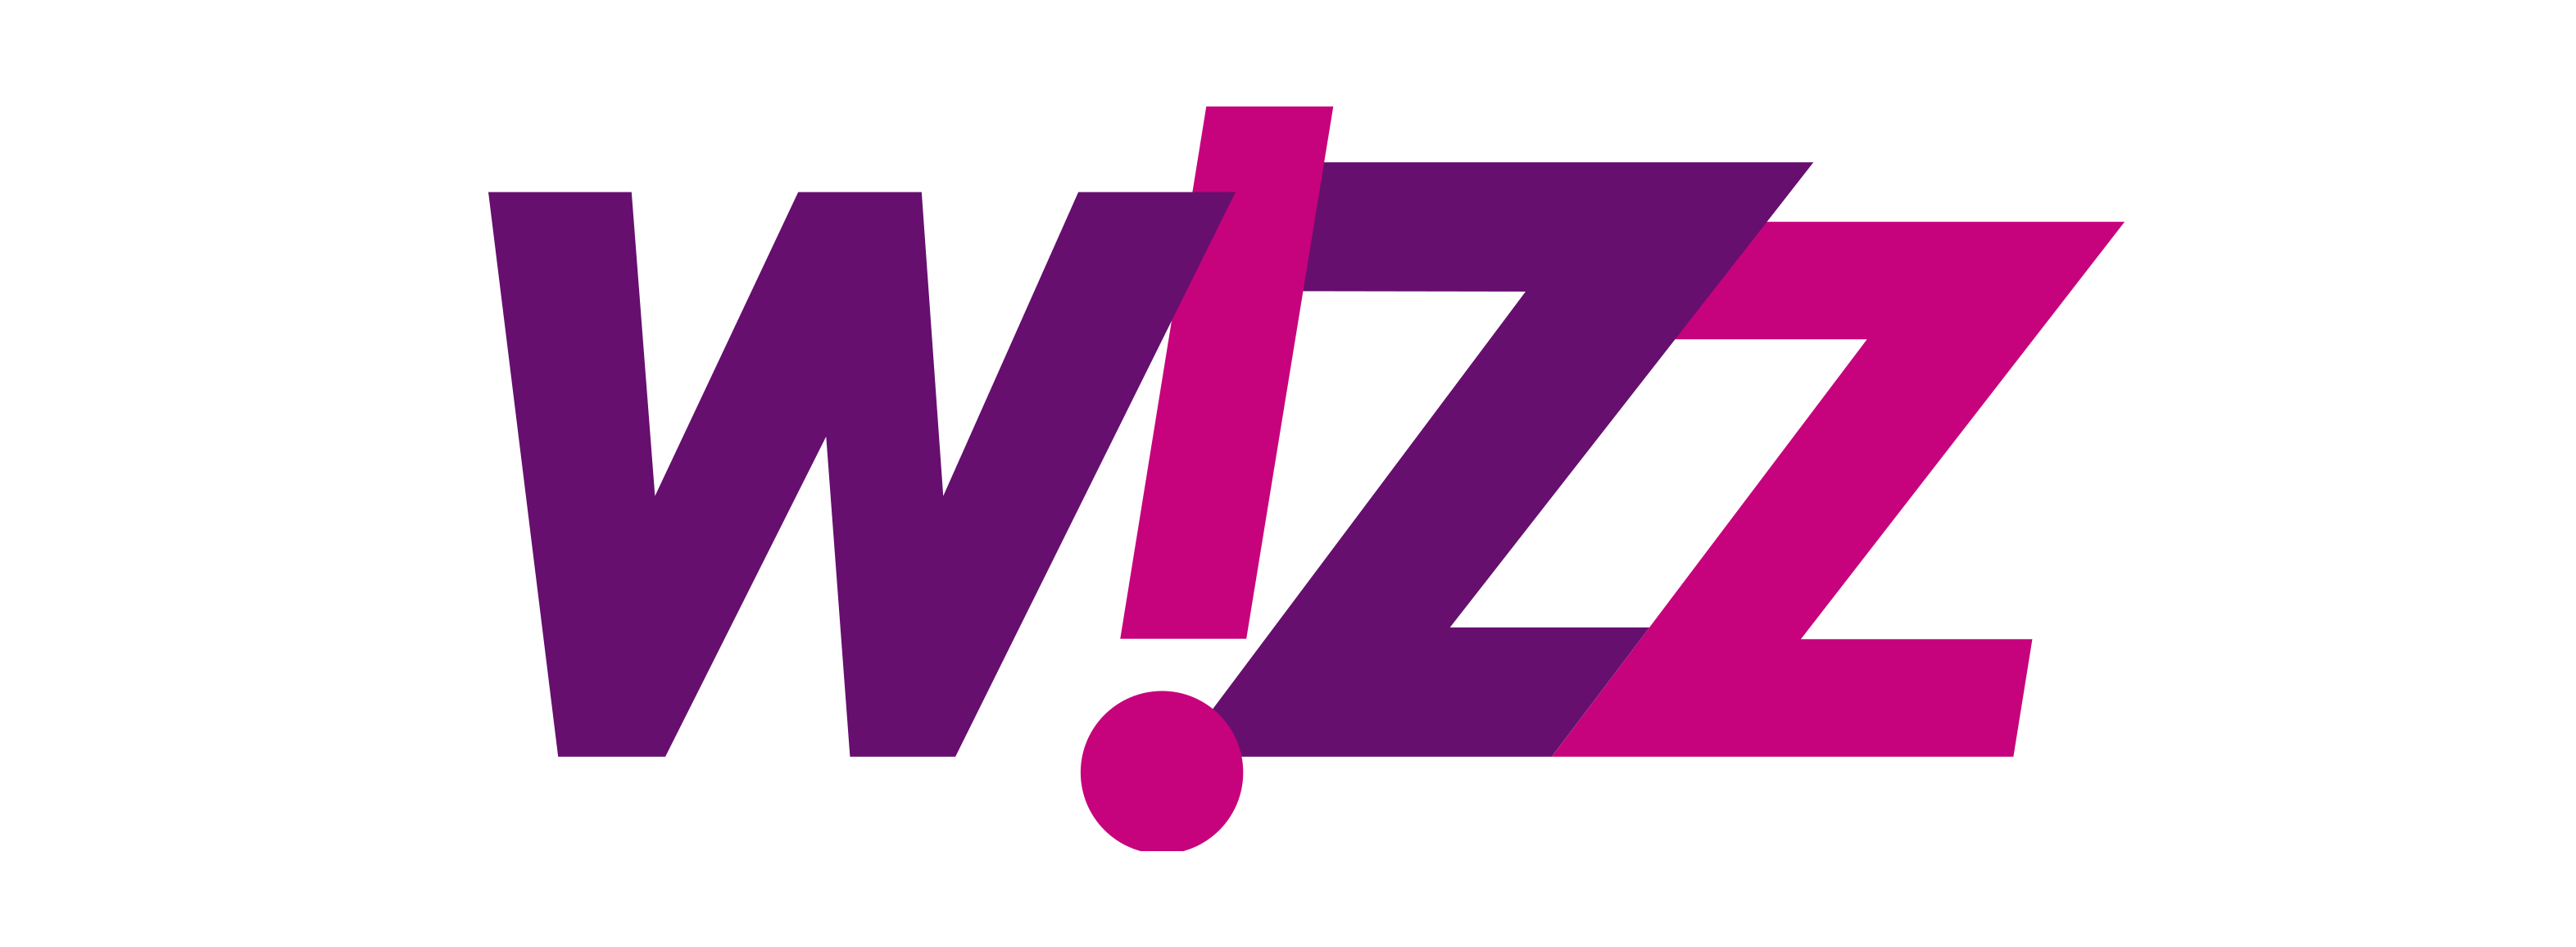 Wizz Air careers